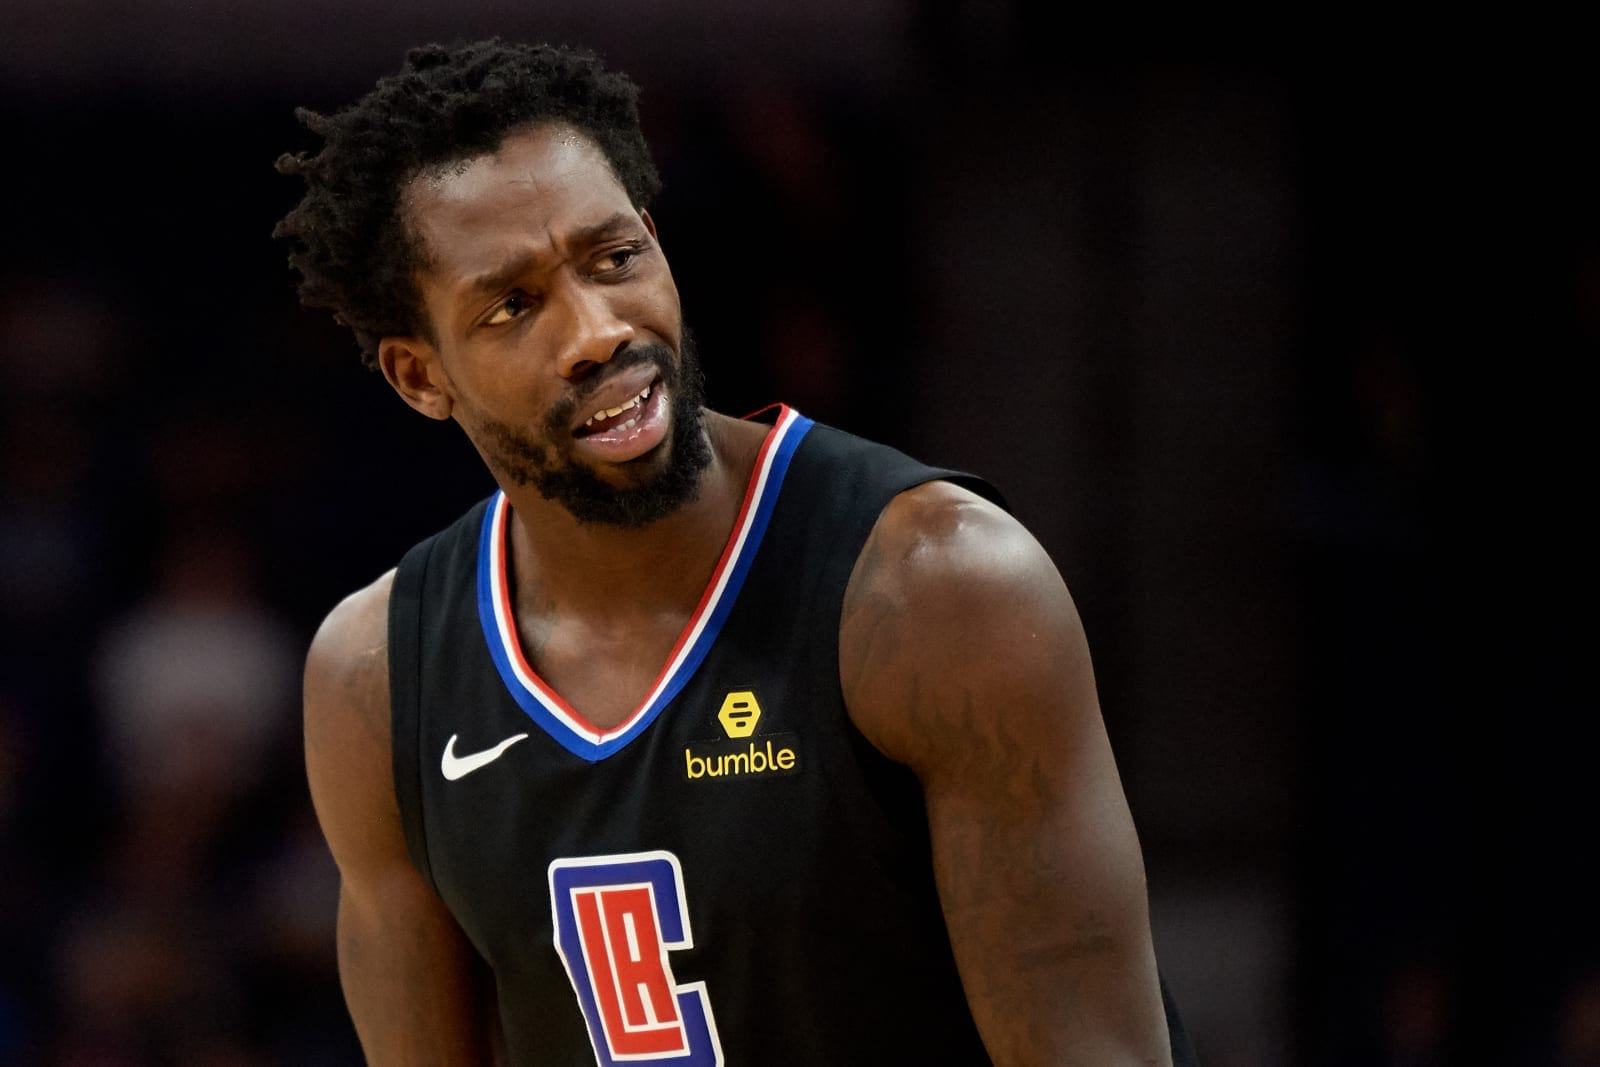 Patrick Beverley Out Another 3-4 Weeks With A Fractured Hand